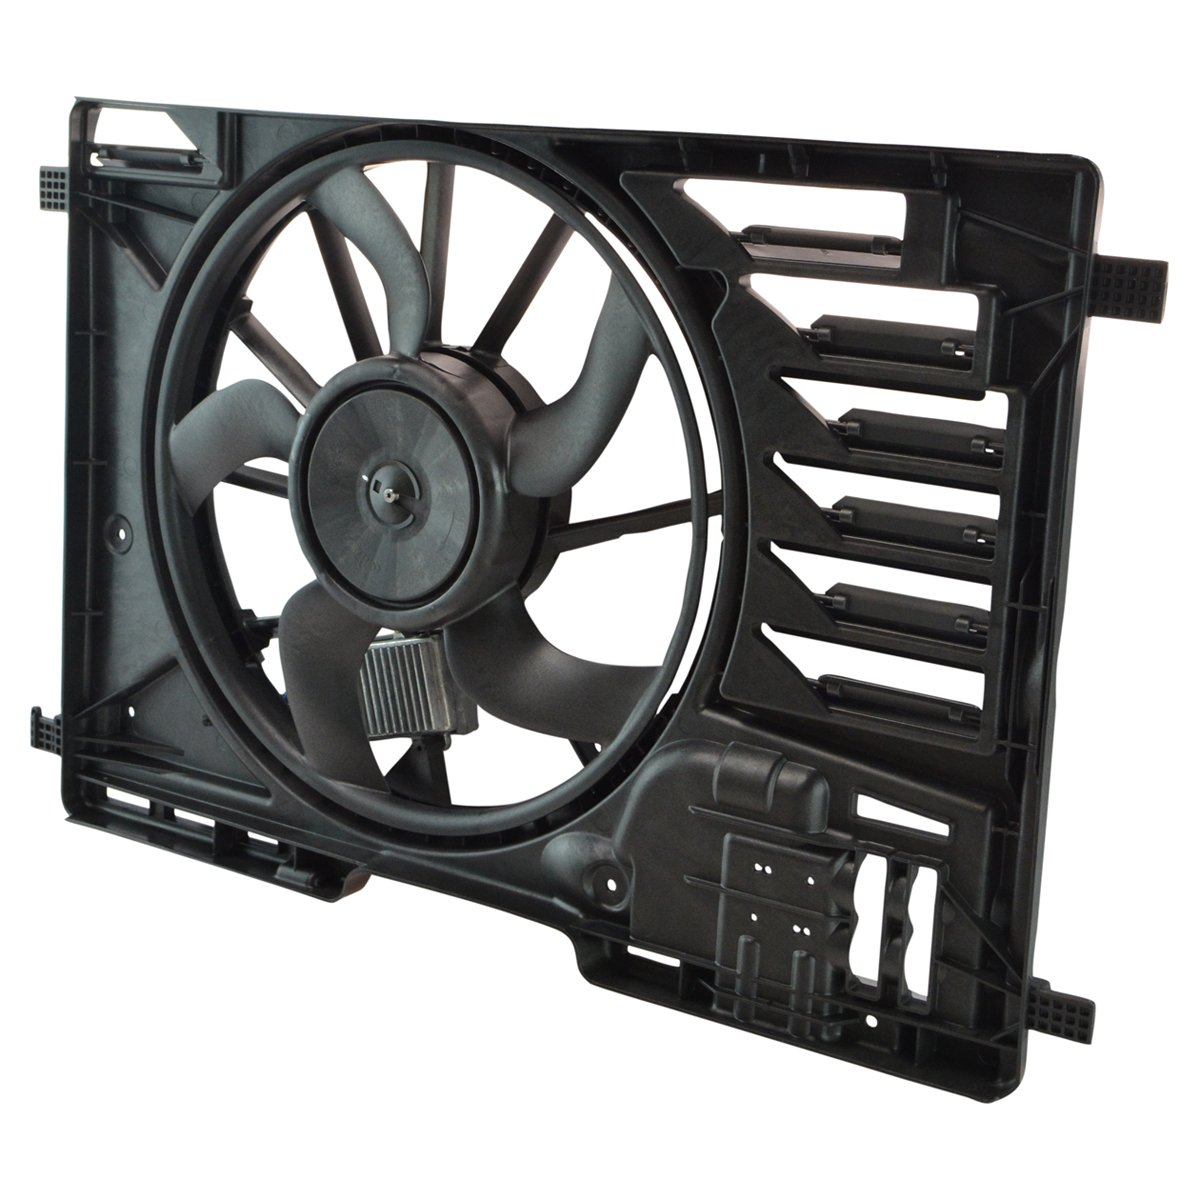 Replacement Radiator Cooling Fan Assembly for Escape 1.6L 2.5L Transit Connect